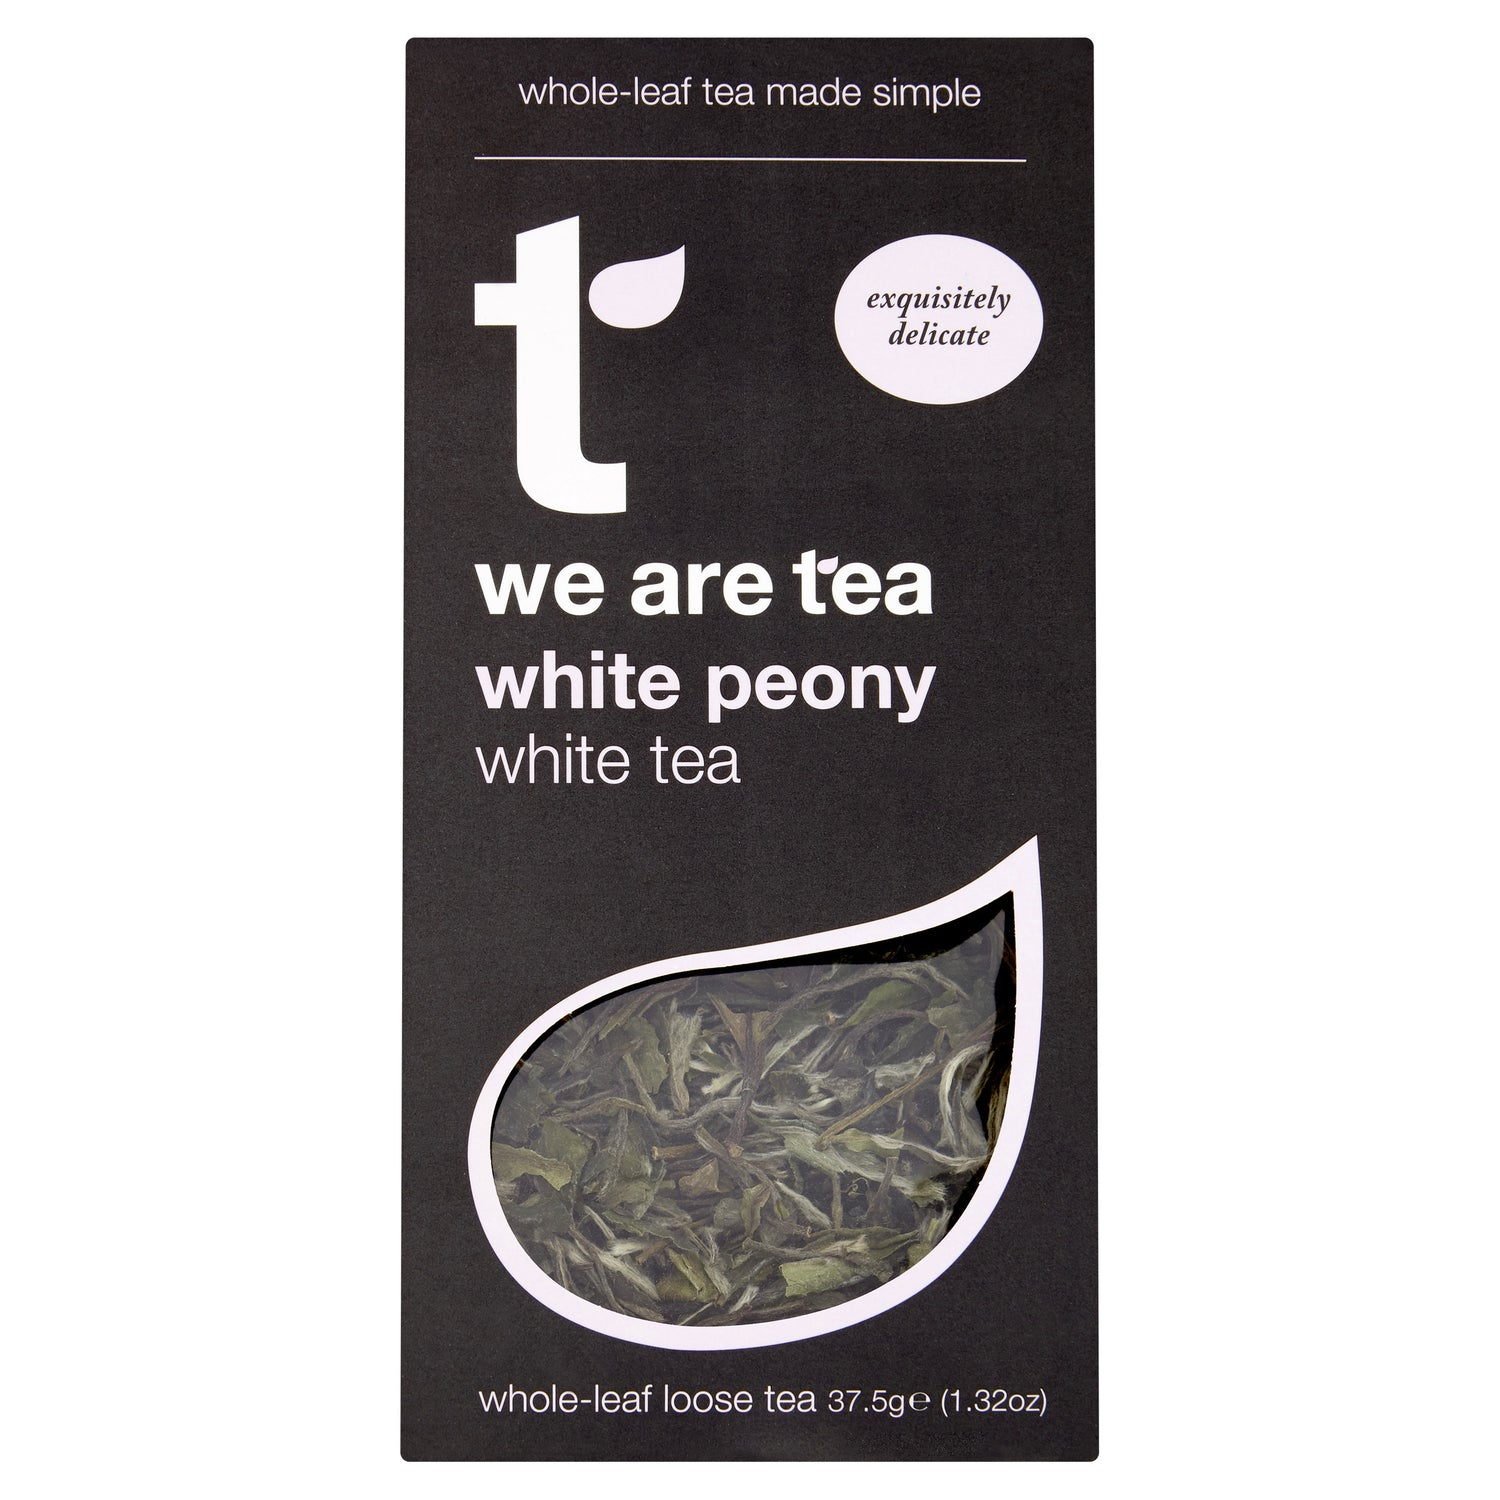 we are tea white peony white tea loose leaf